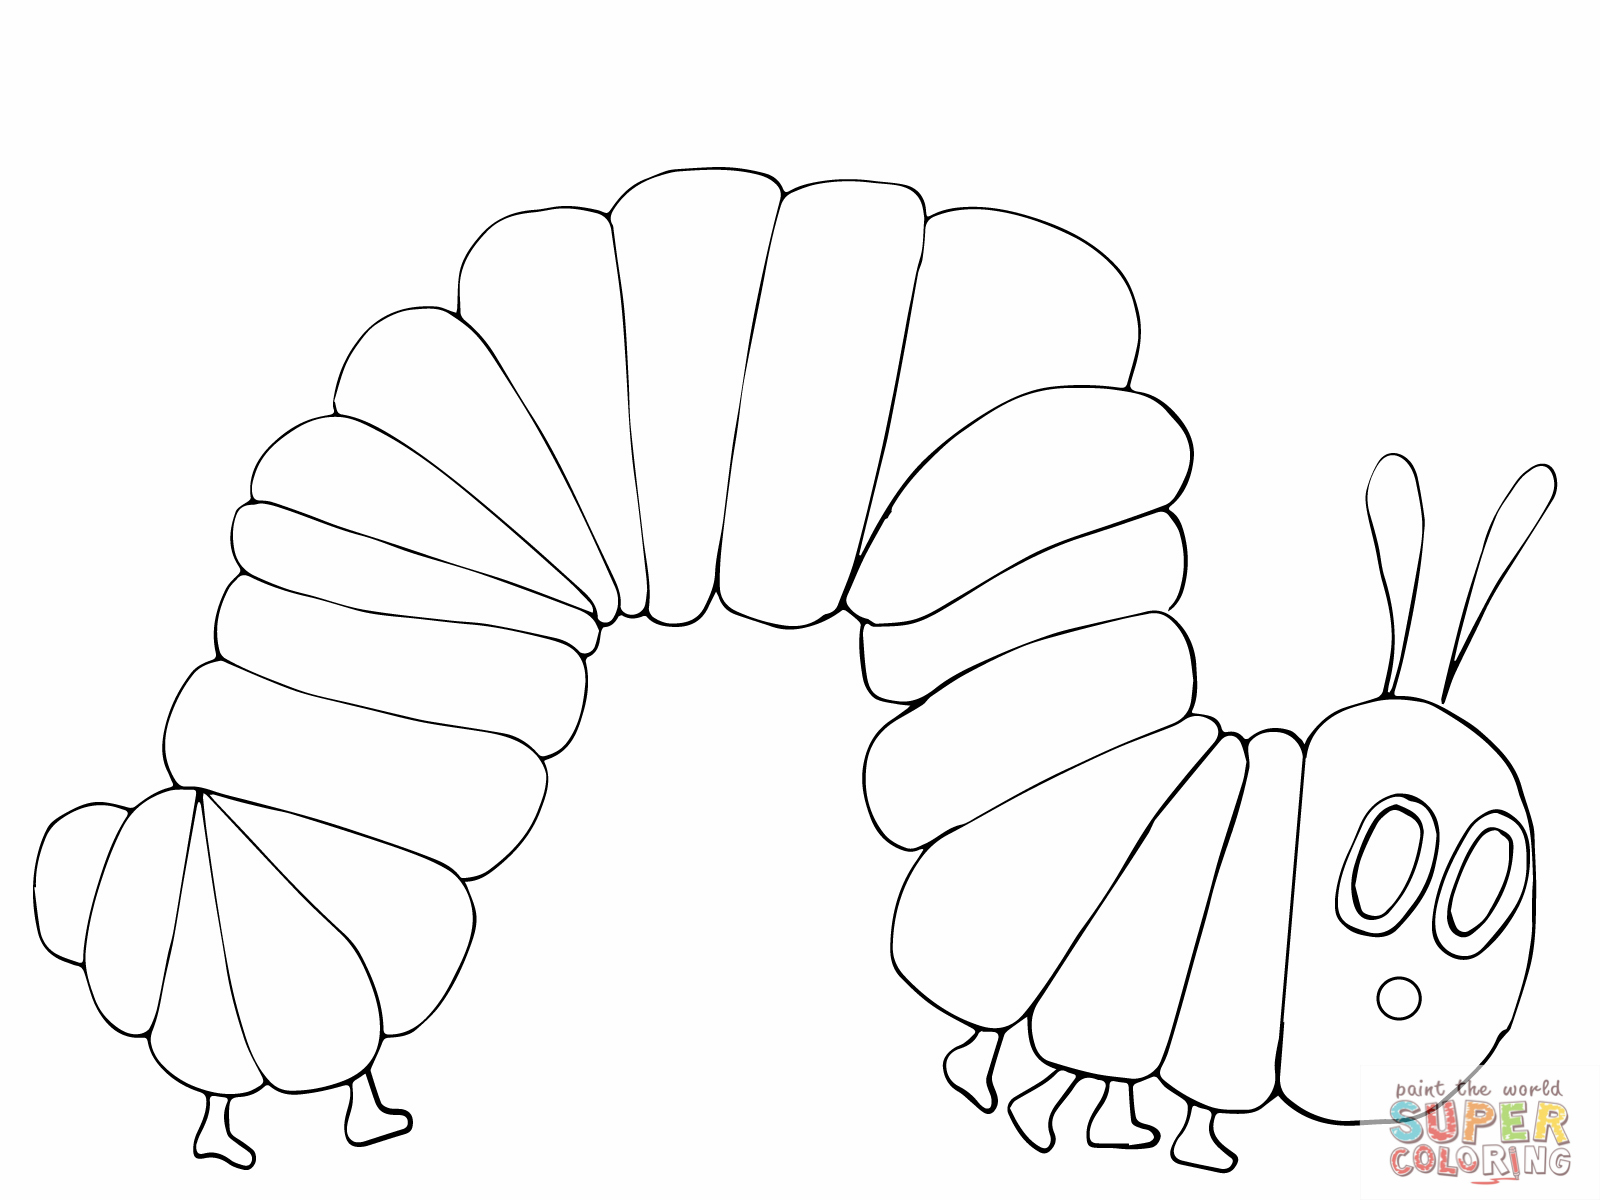 Very Hungry Caterpillar Coloring Pages To Download And Print For Free